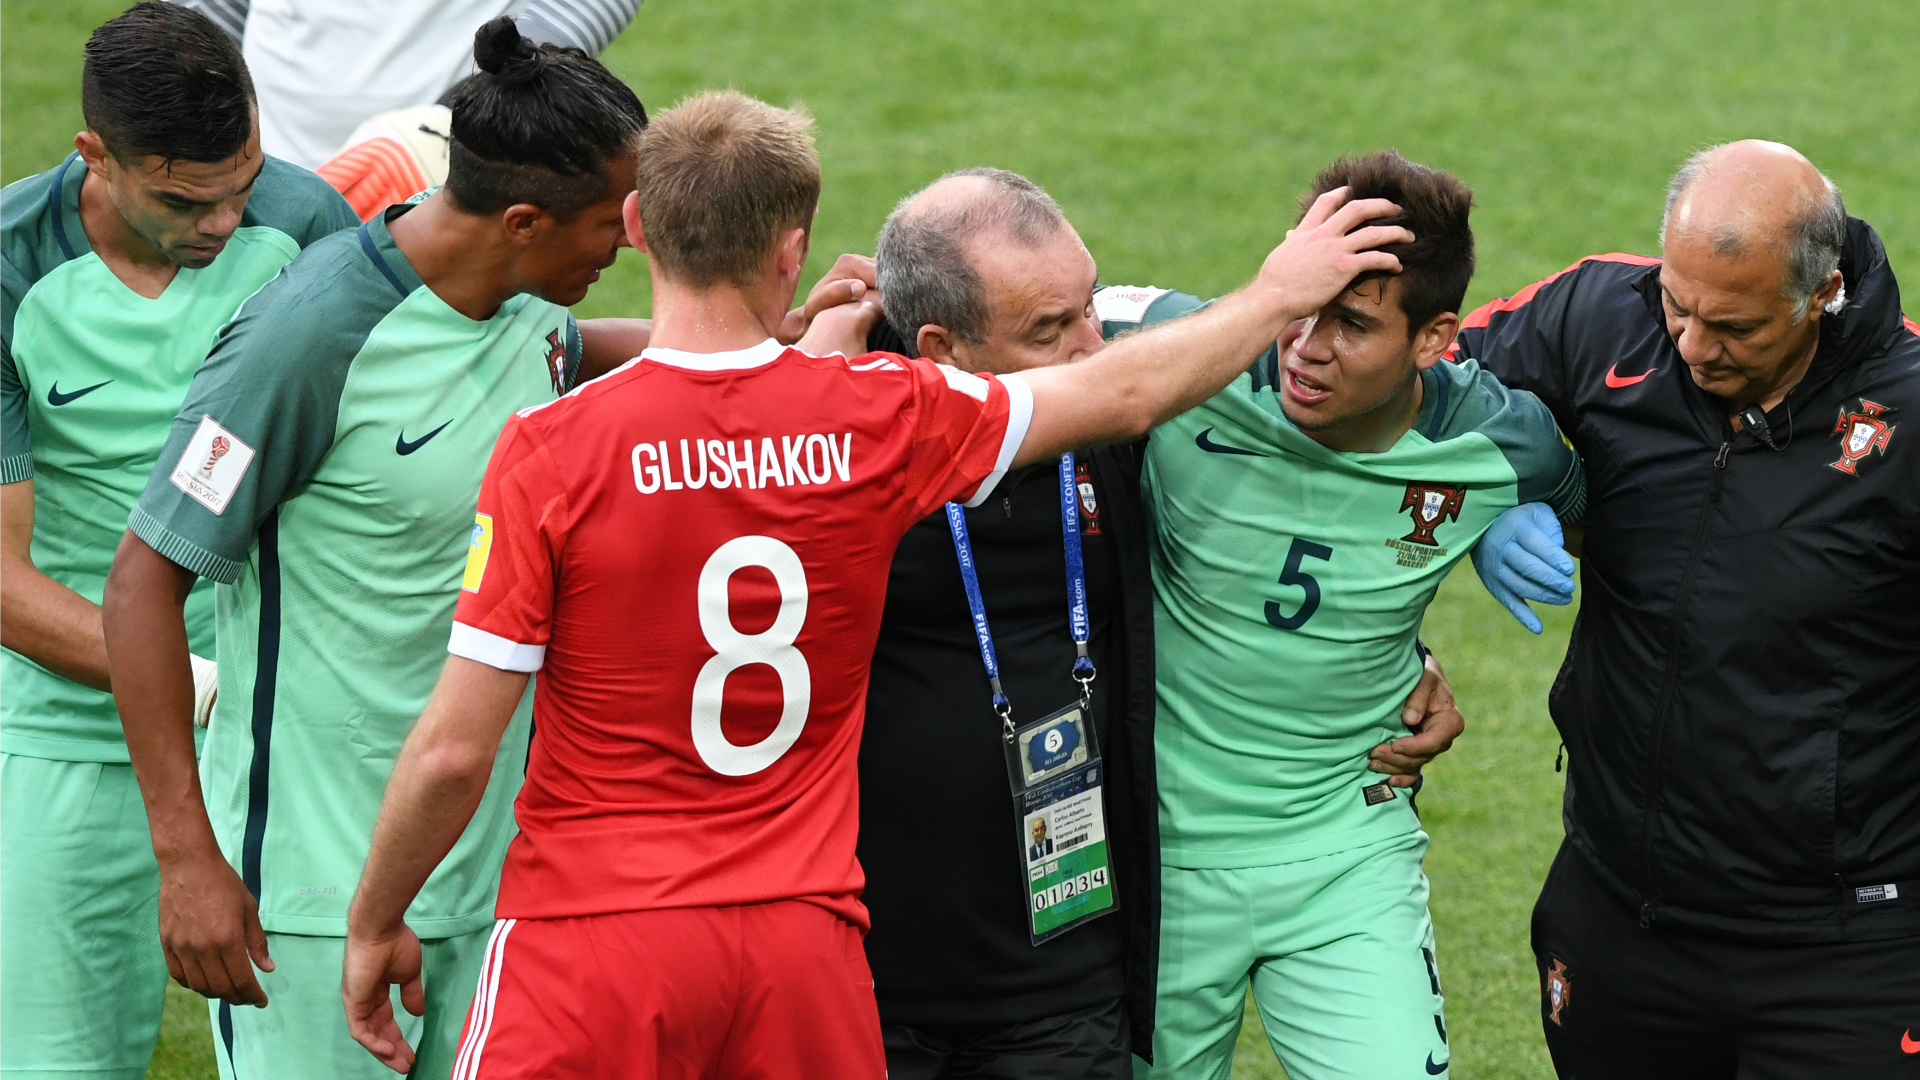 Guerreiro confirms fracture, ruled out of Confederations Cup remainder